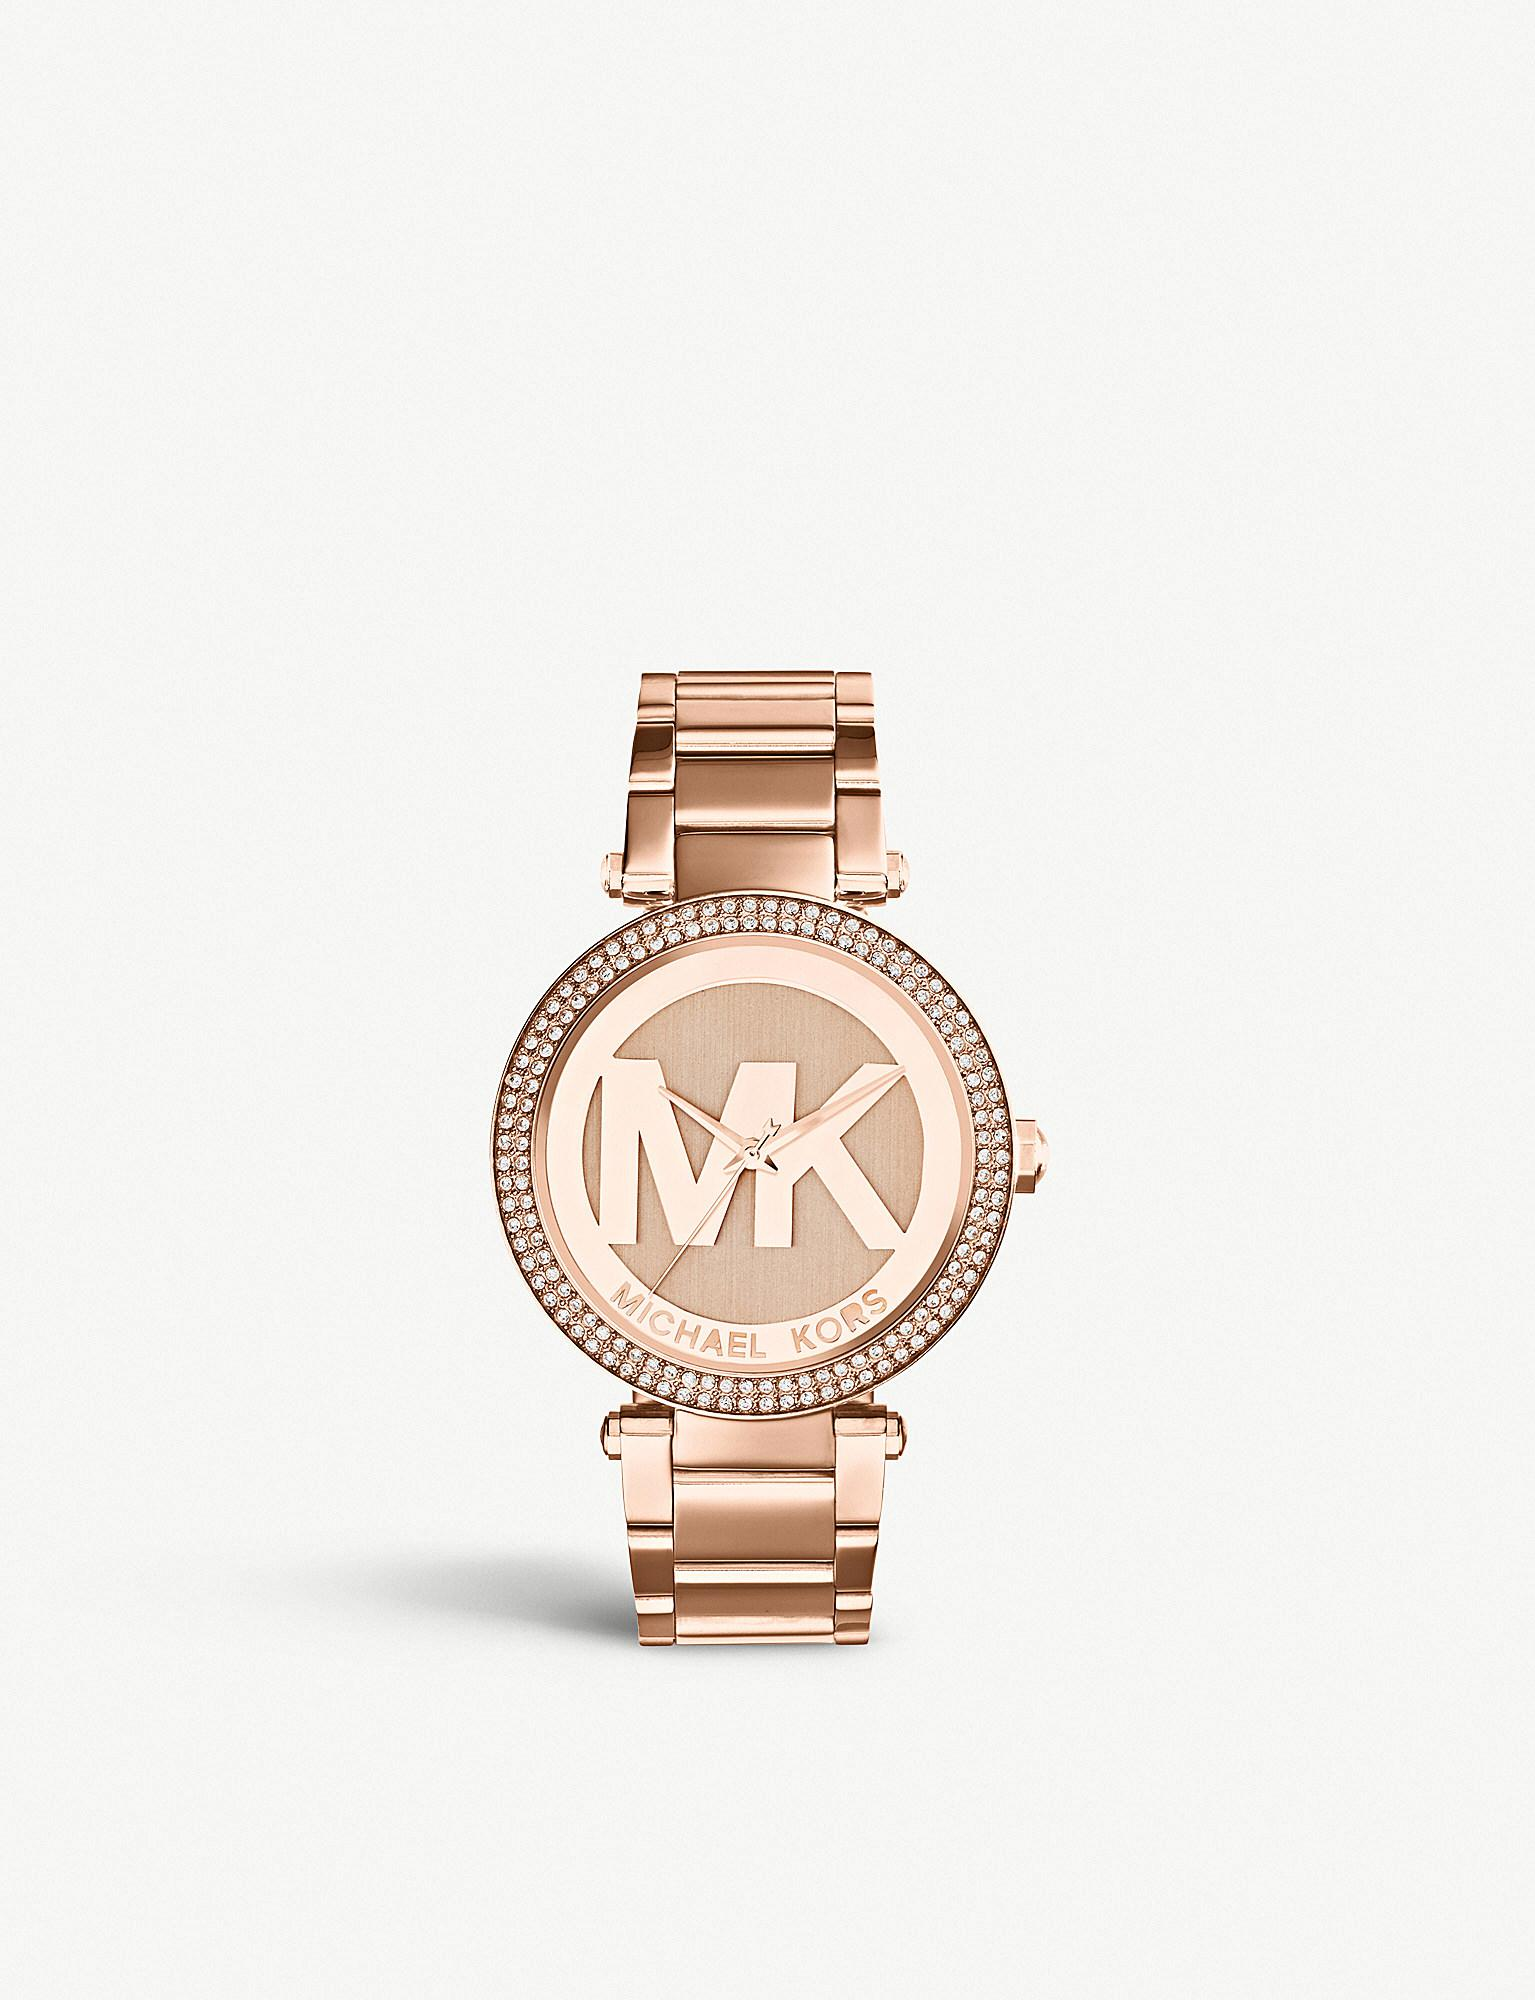 ffdfc8a1a9b6 Lyst - Michael Kors Mk5865 Parker Rose-gold Pvd Plated Stainless ...